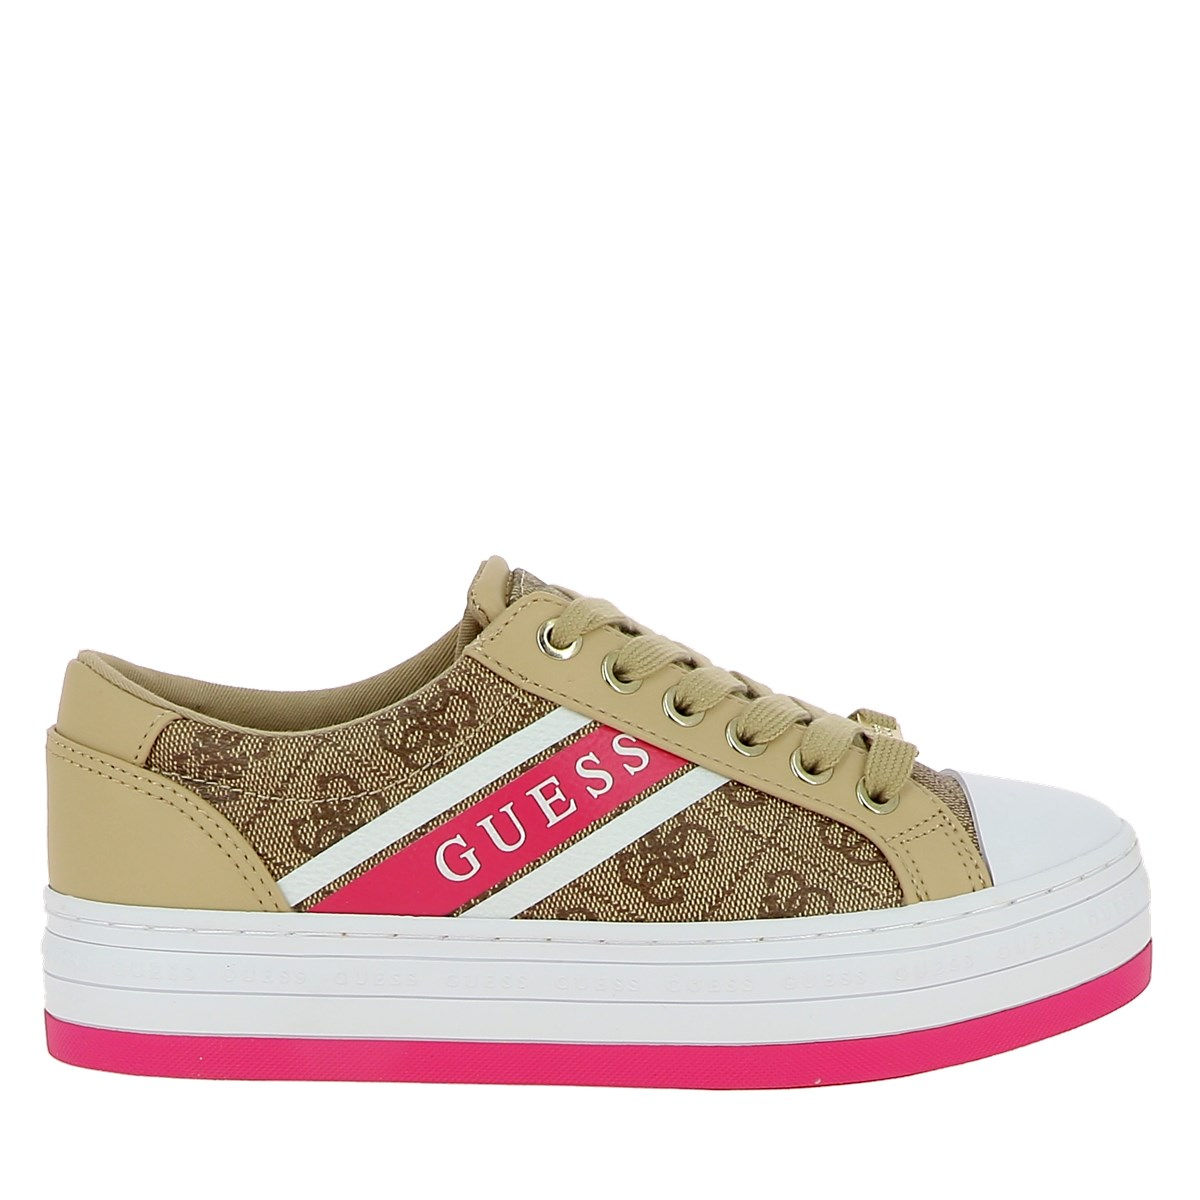 Guess femme barona active beige